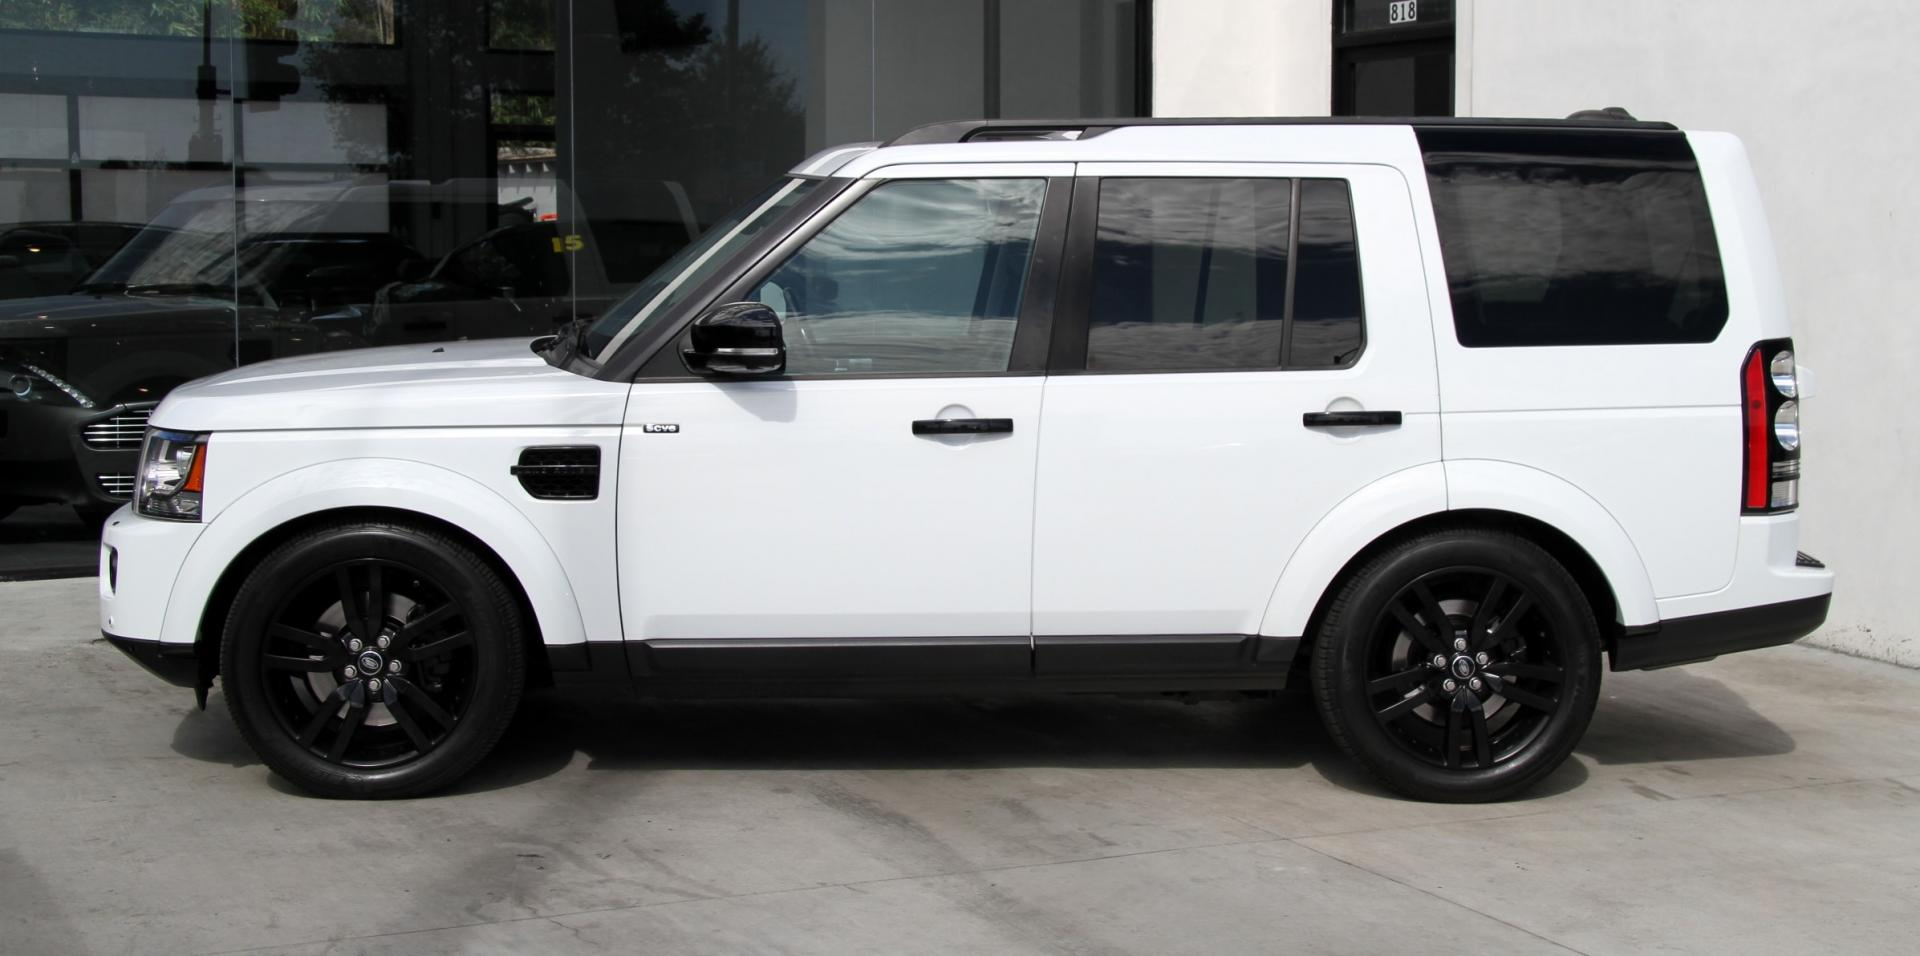 Used Rims For Sale Near Me >> 2014 Land Rover LR4 HSE ** BLACK DESIGN PACKAGE ** Stock ...